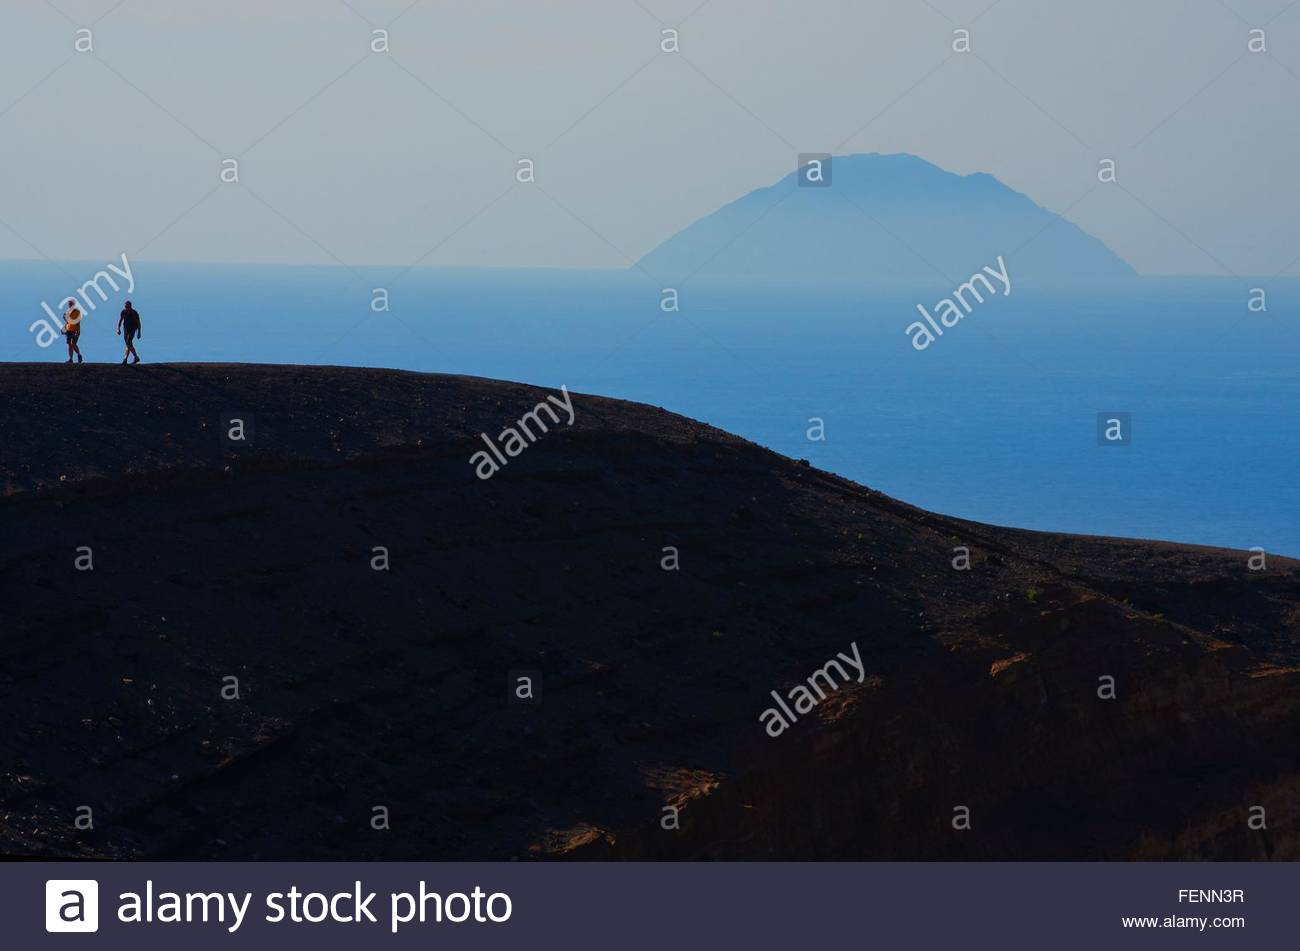 Two silhouetted tourists walking crater rim, Vulcano Island, Aeolian Islands, Sicily, Italy - Stock Image